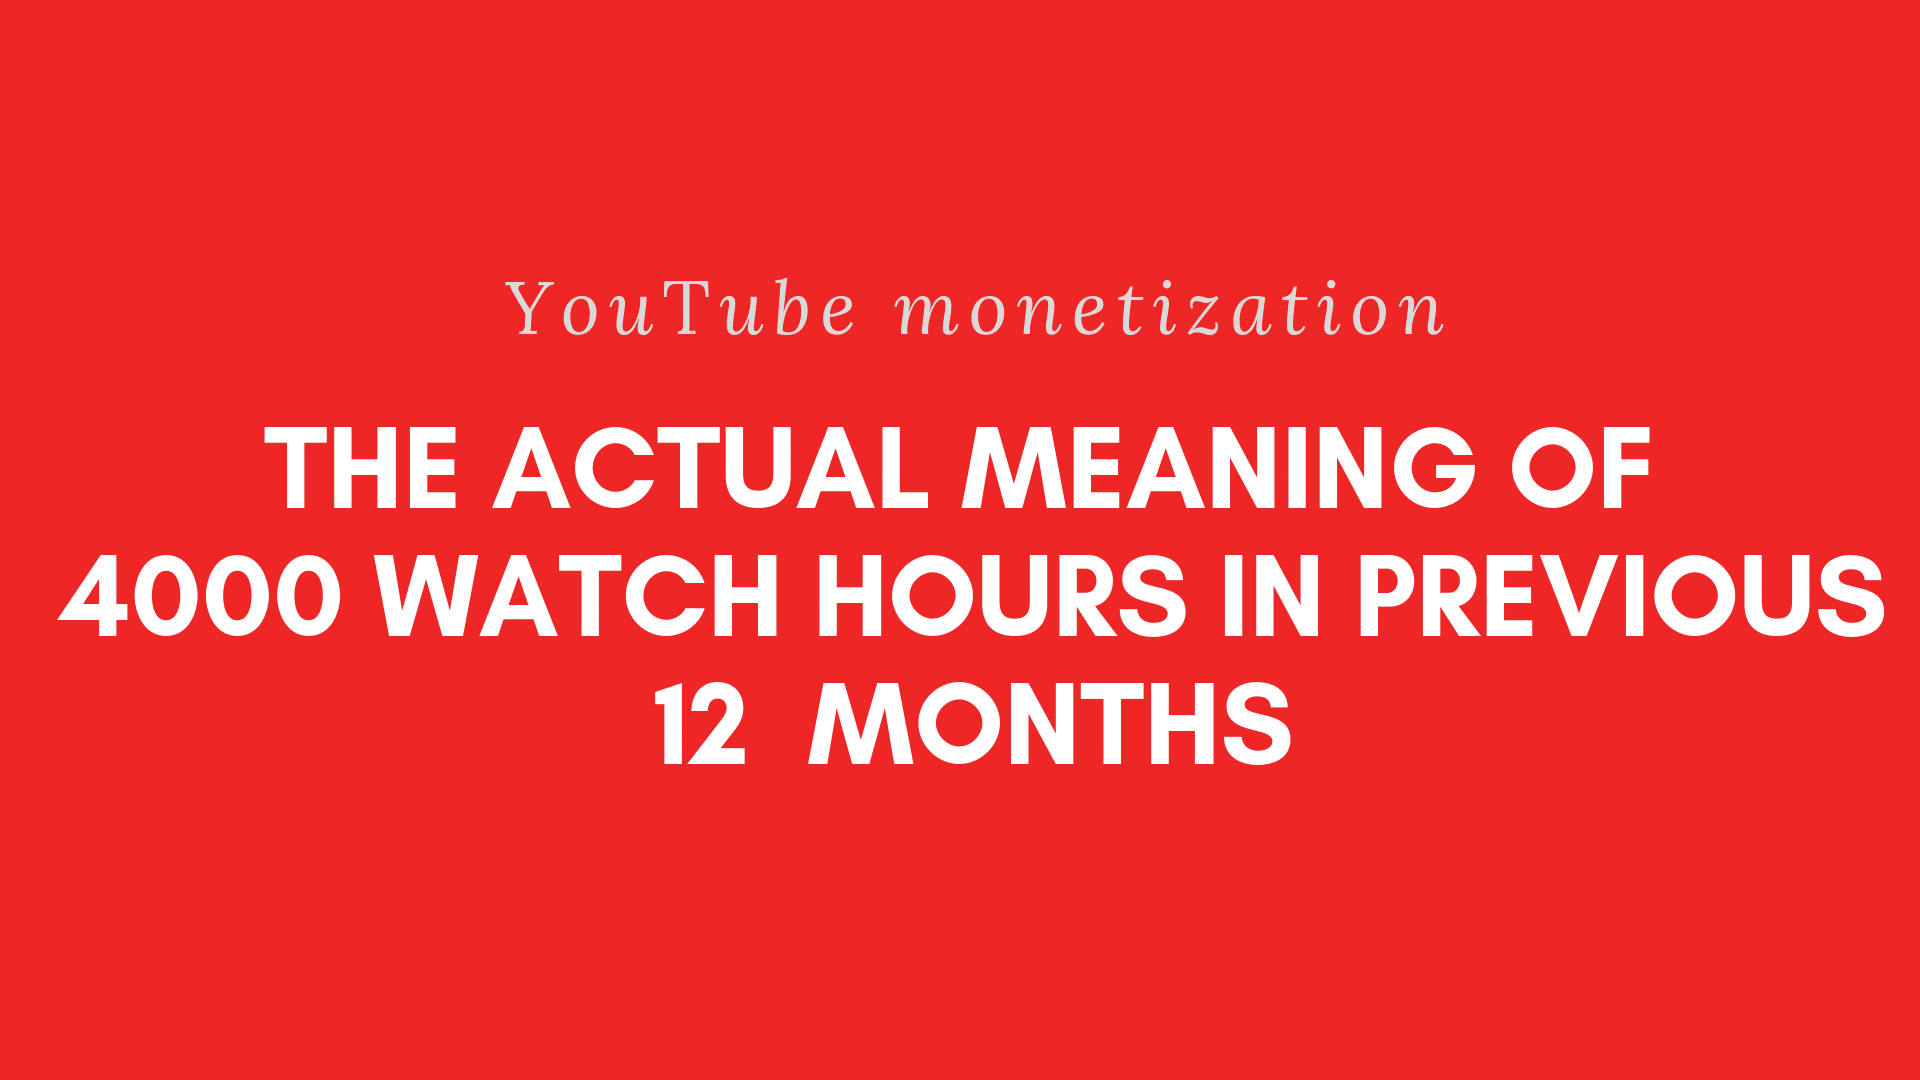 the actual meaning of youtube 4000 watch hours in previous 12 months